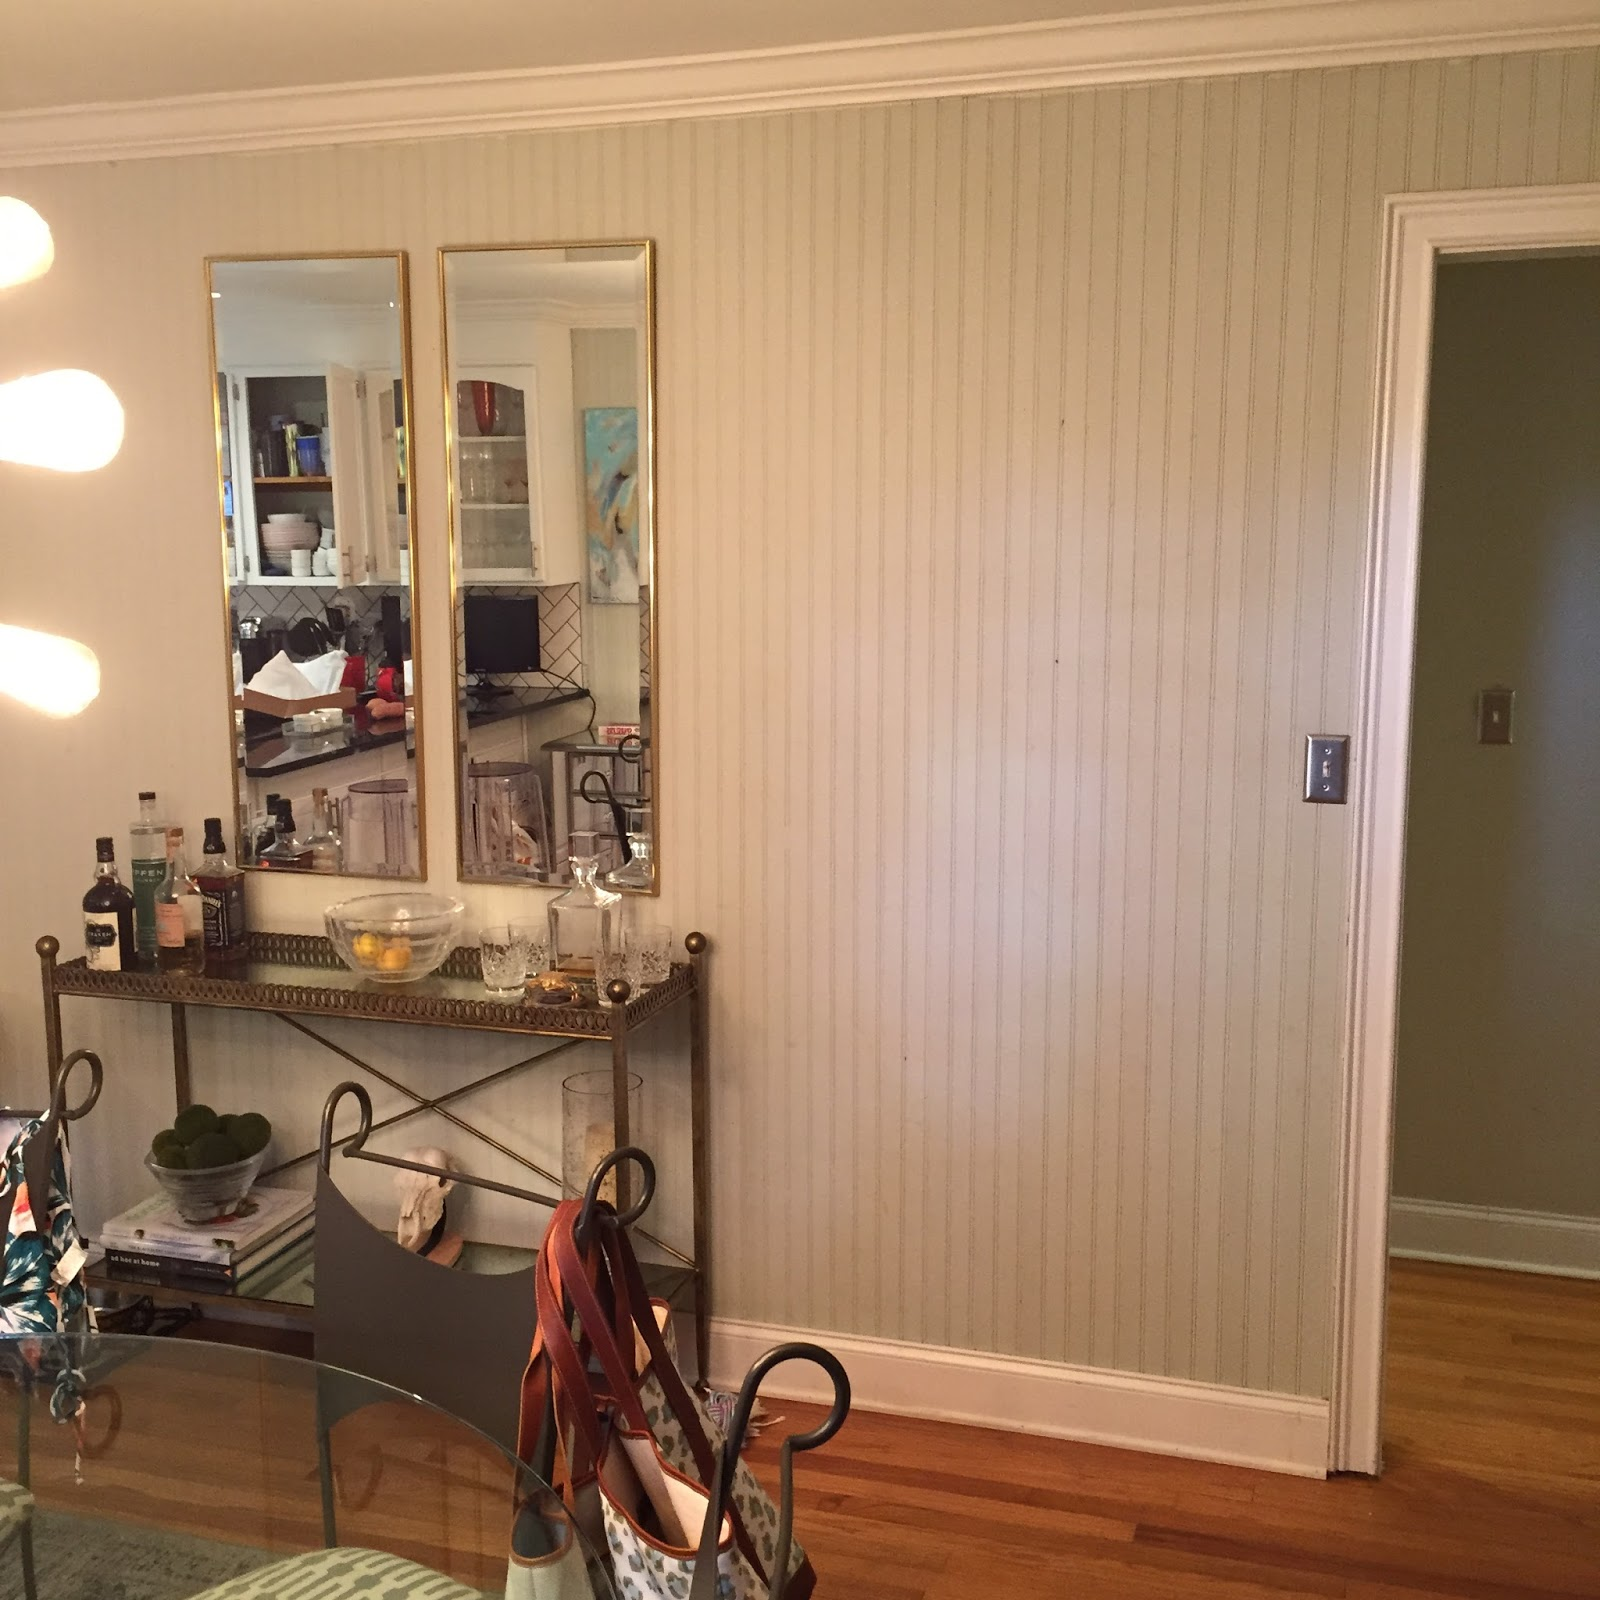 Designer Bags And Dirty Diapers: Our Dining Room Before